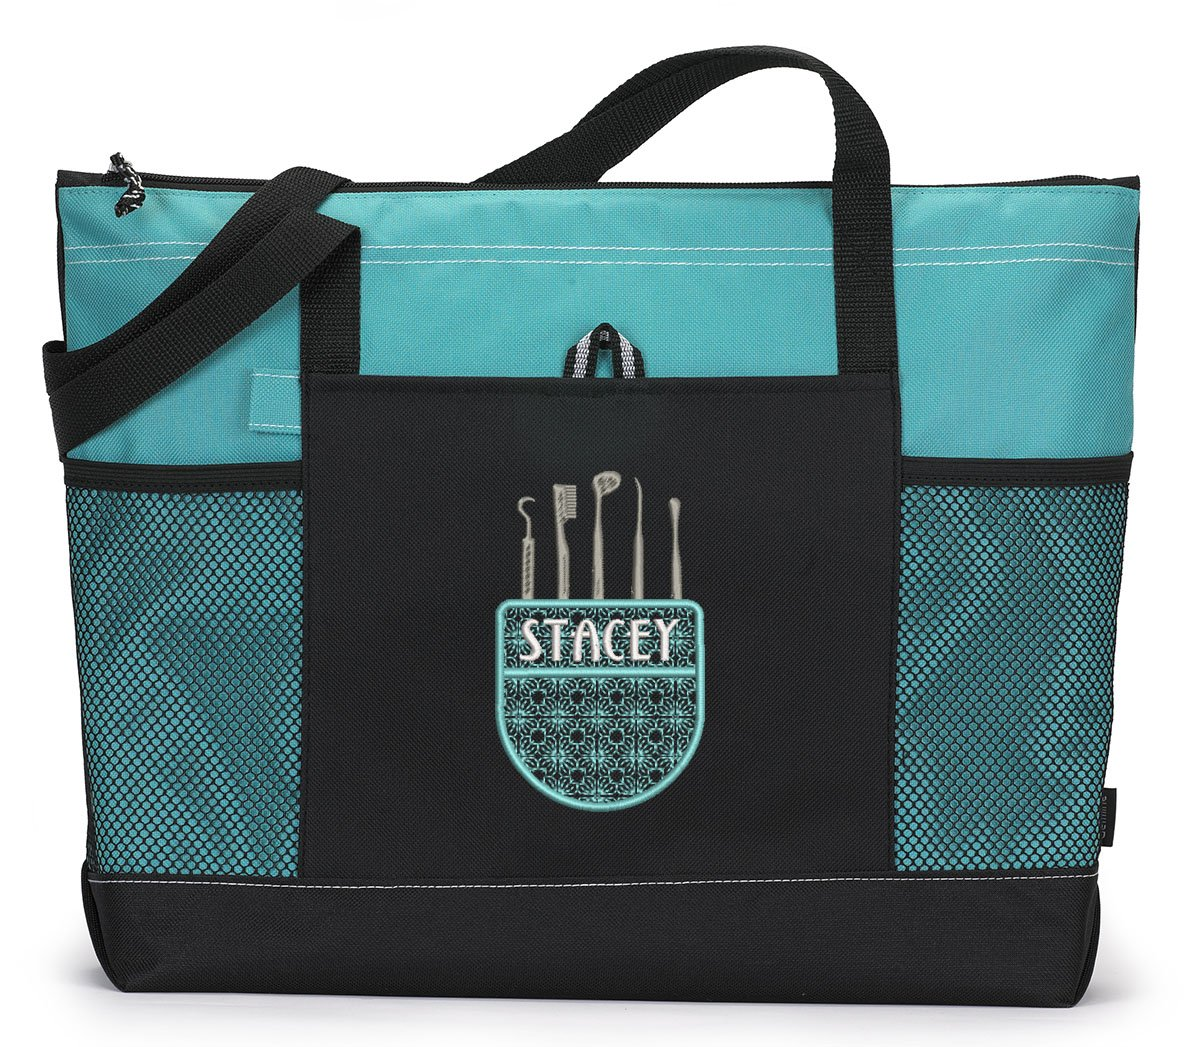 Dental Tools Pocket Personalized Tote Bag with Mesh Pockets